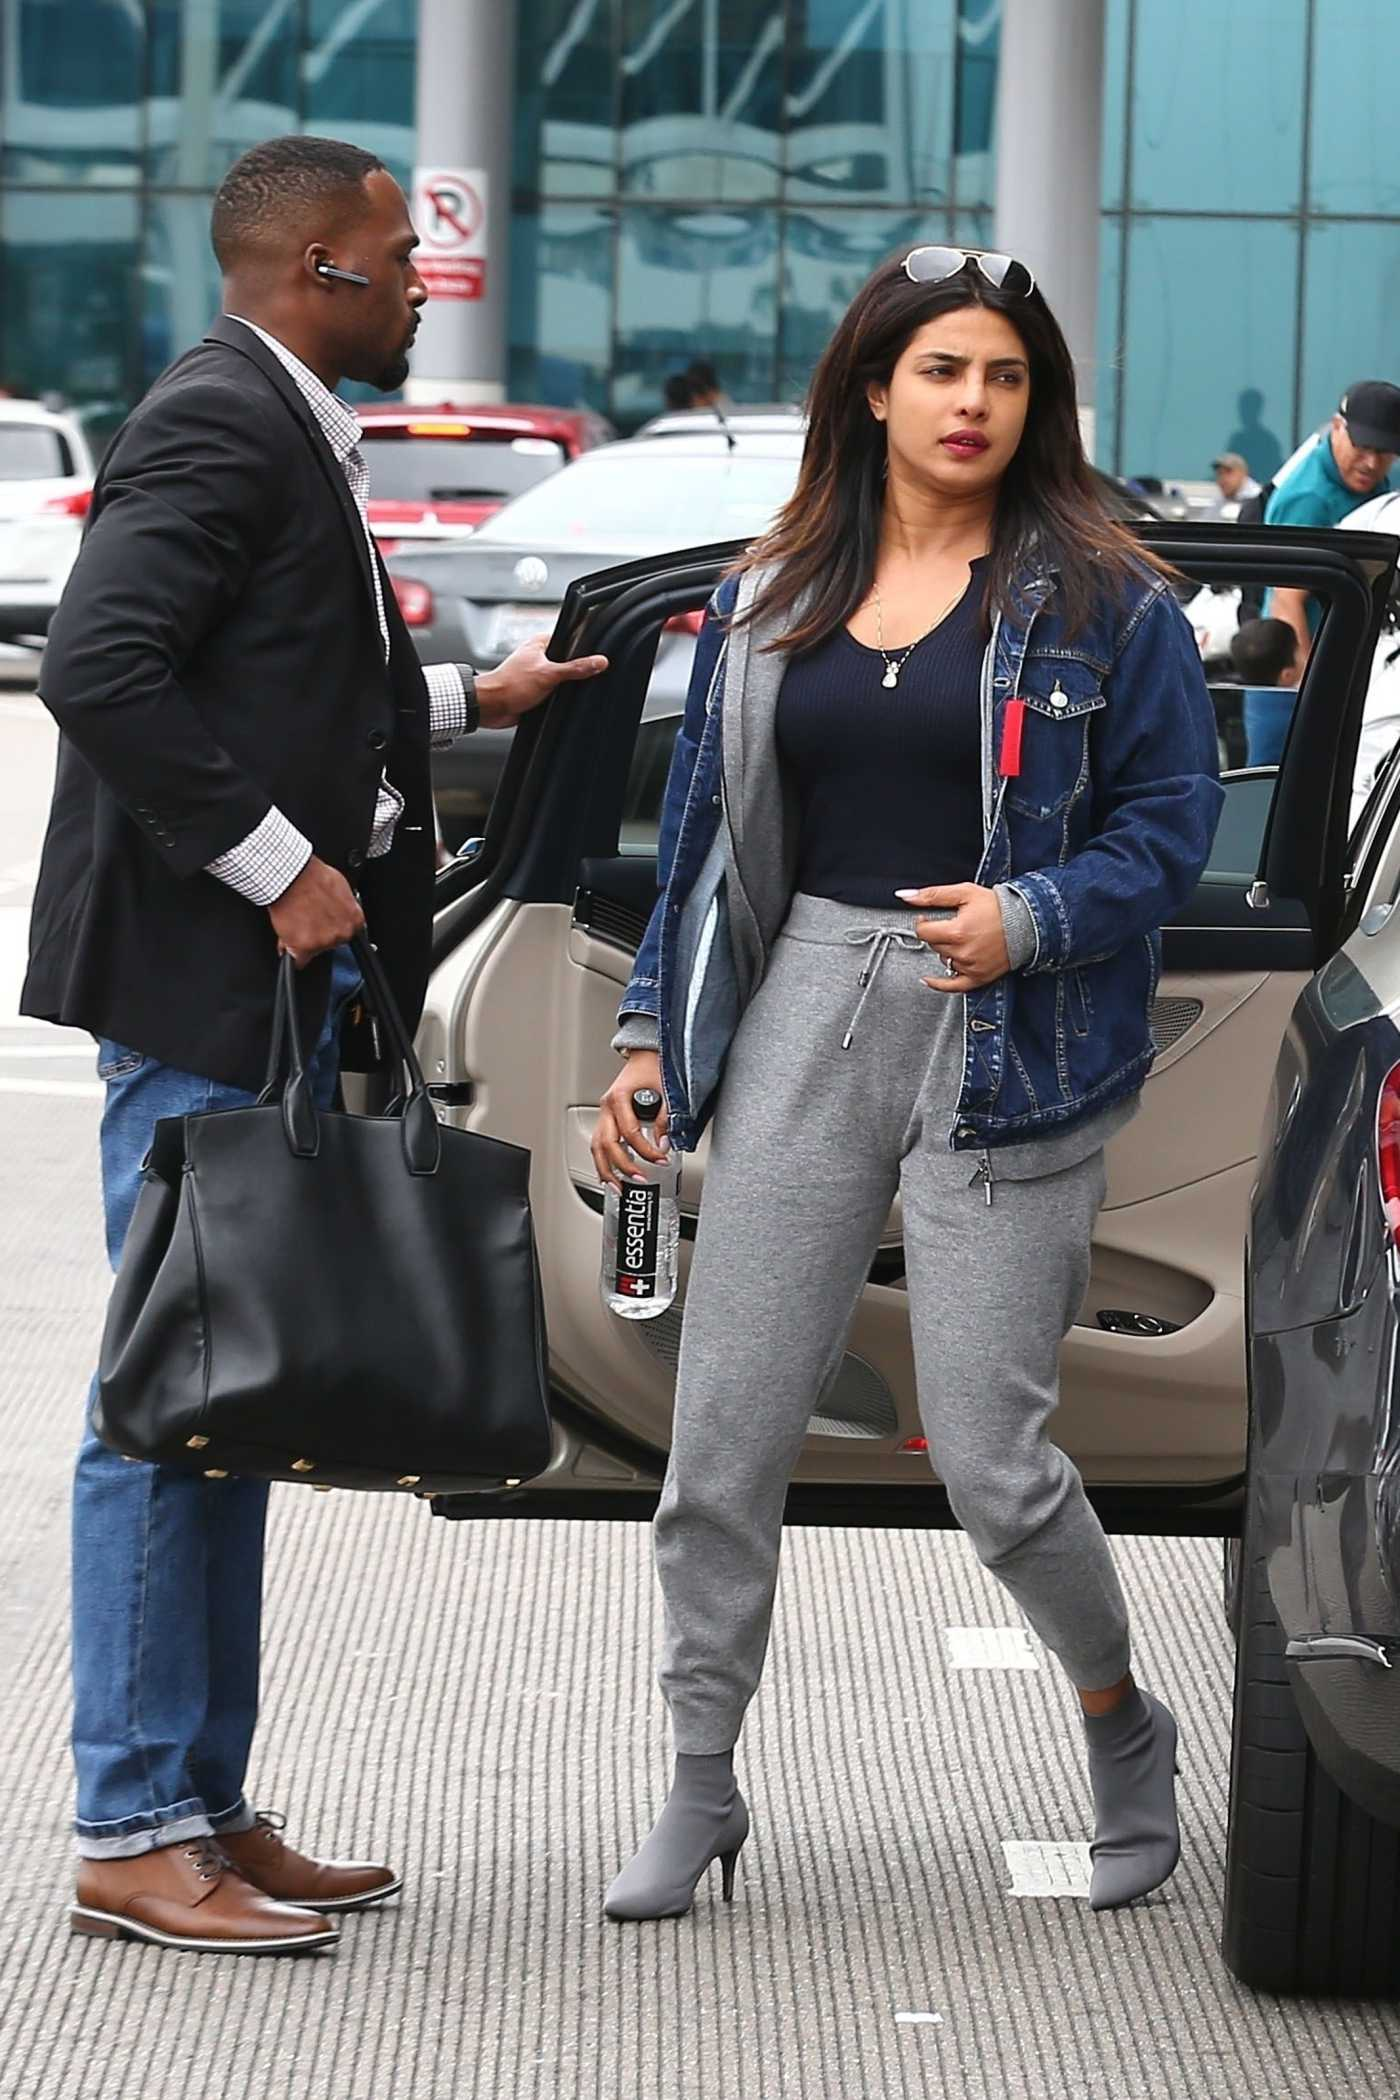 Priyanka Chopra in a Gray Sweatpants Arrives at LAX Airport in LA 06/04/2019